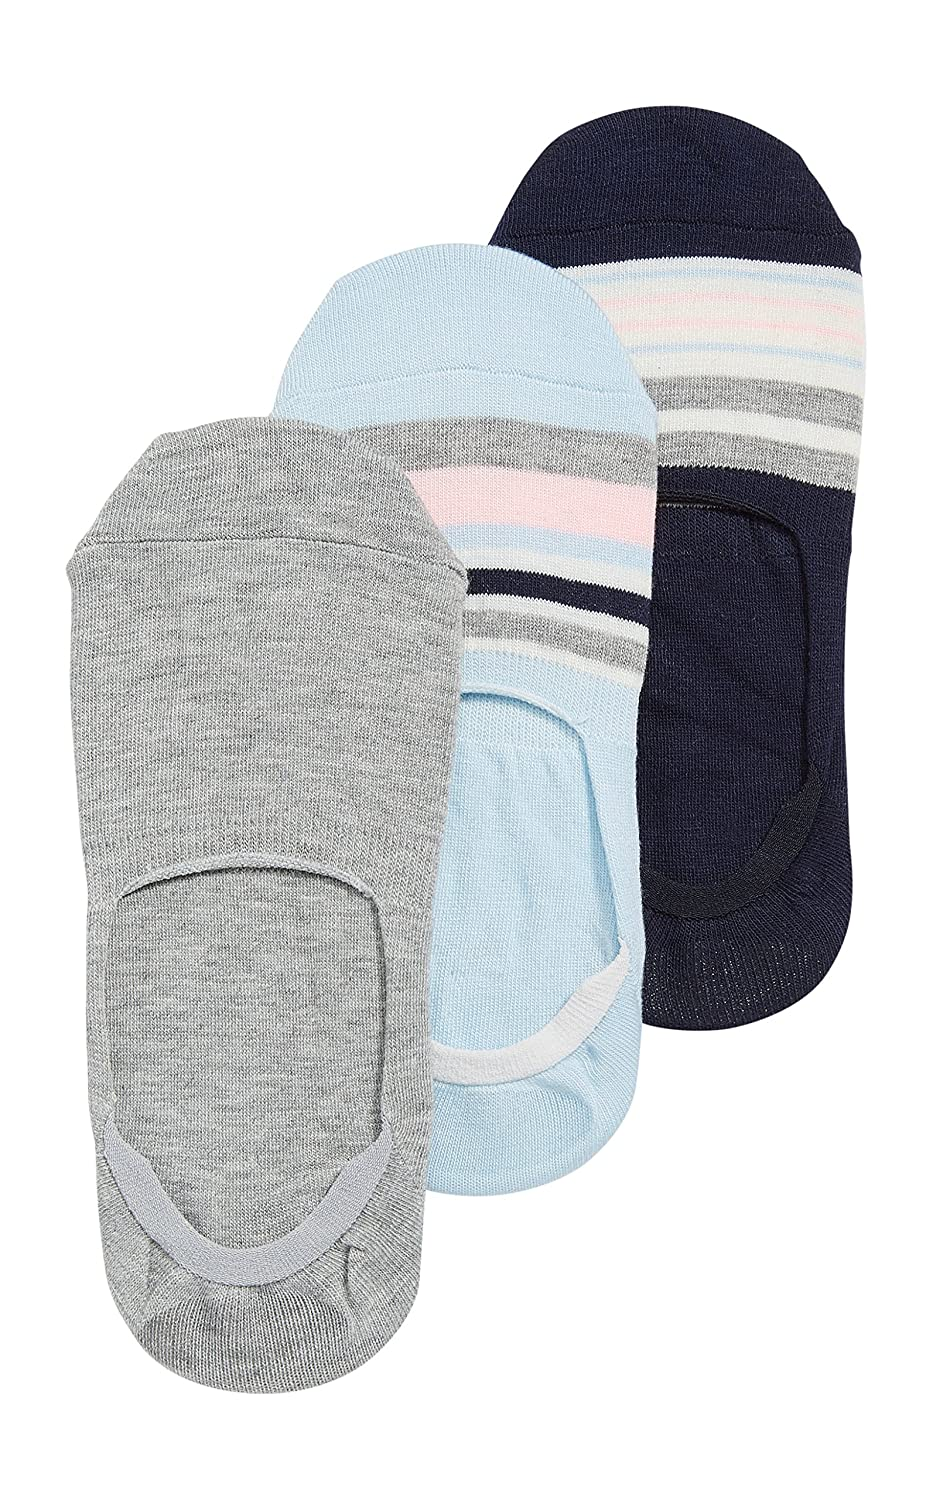 Maurices Women's No-Show Socks With Stripes - 3 Pack One Size Blue Combo